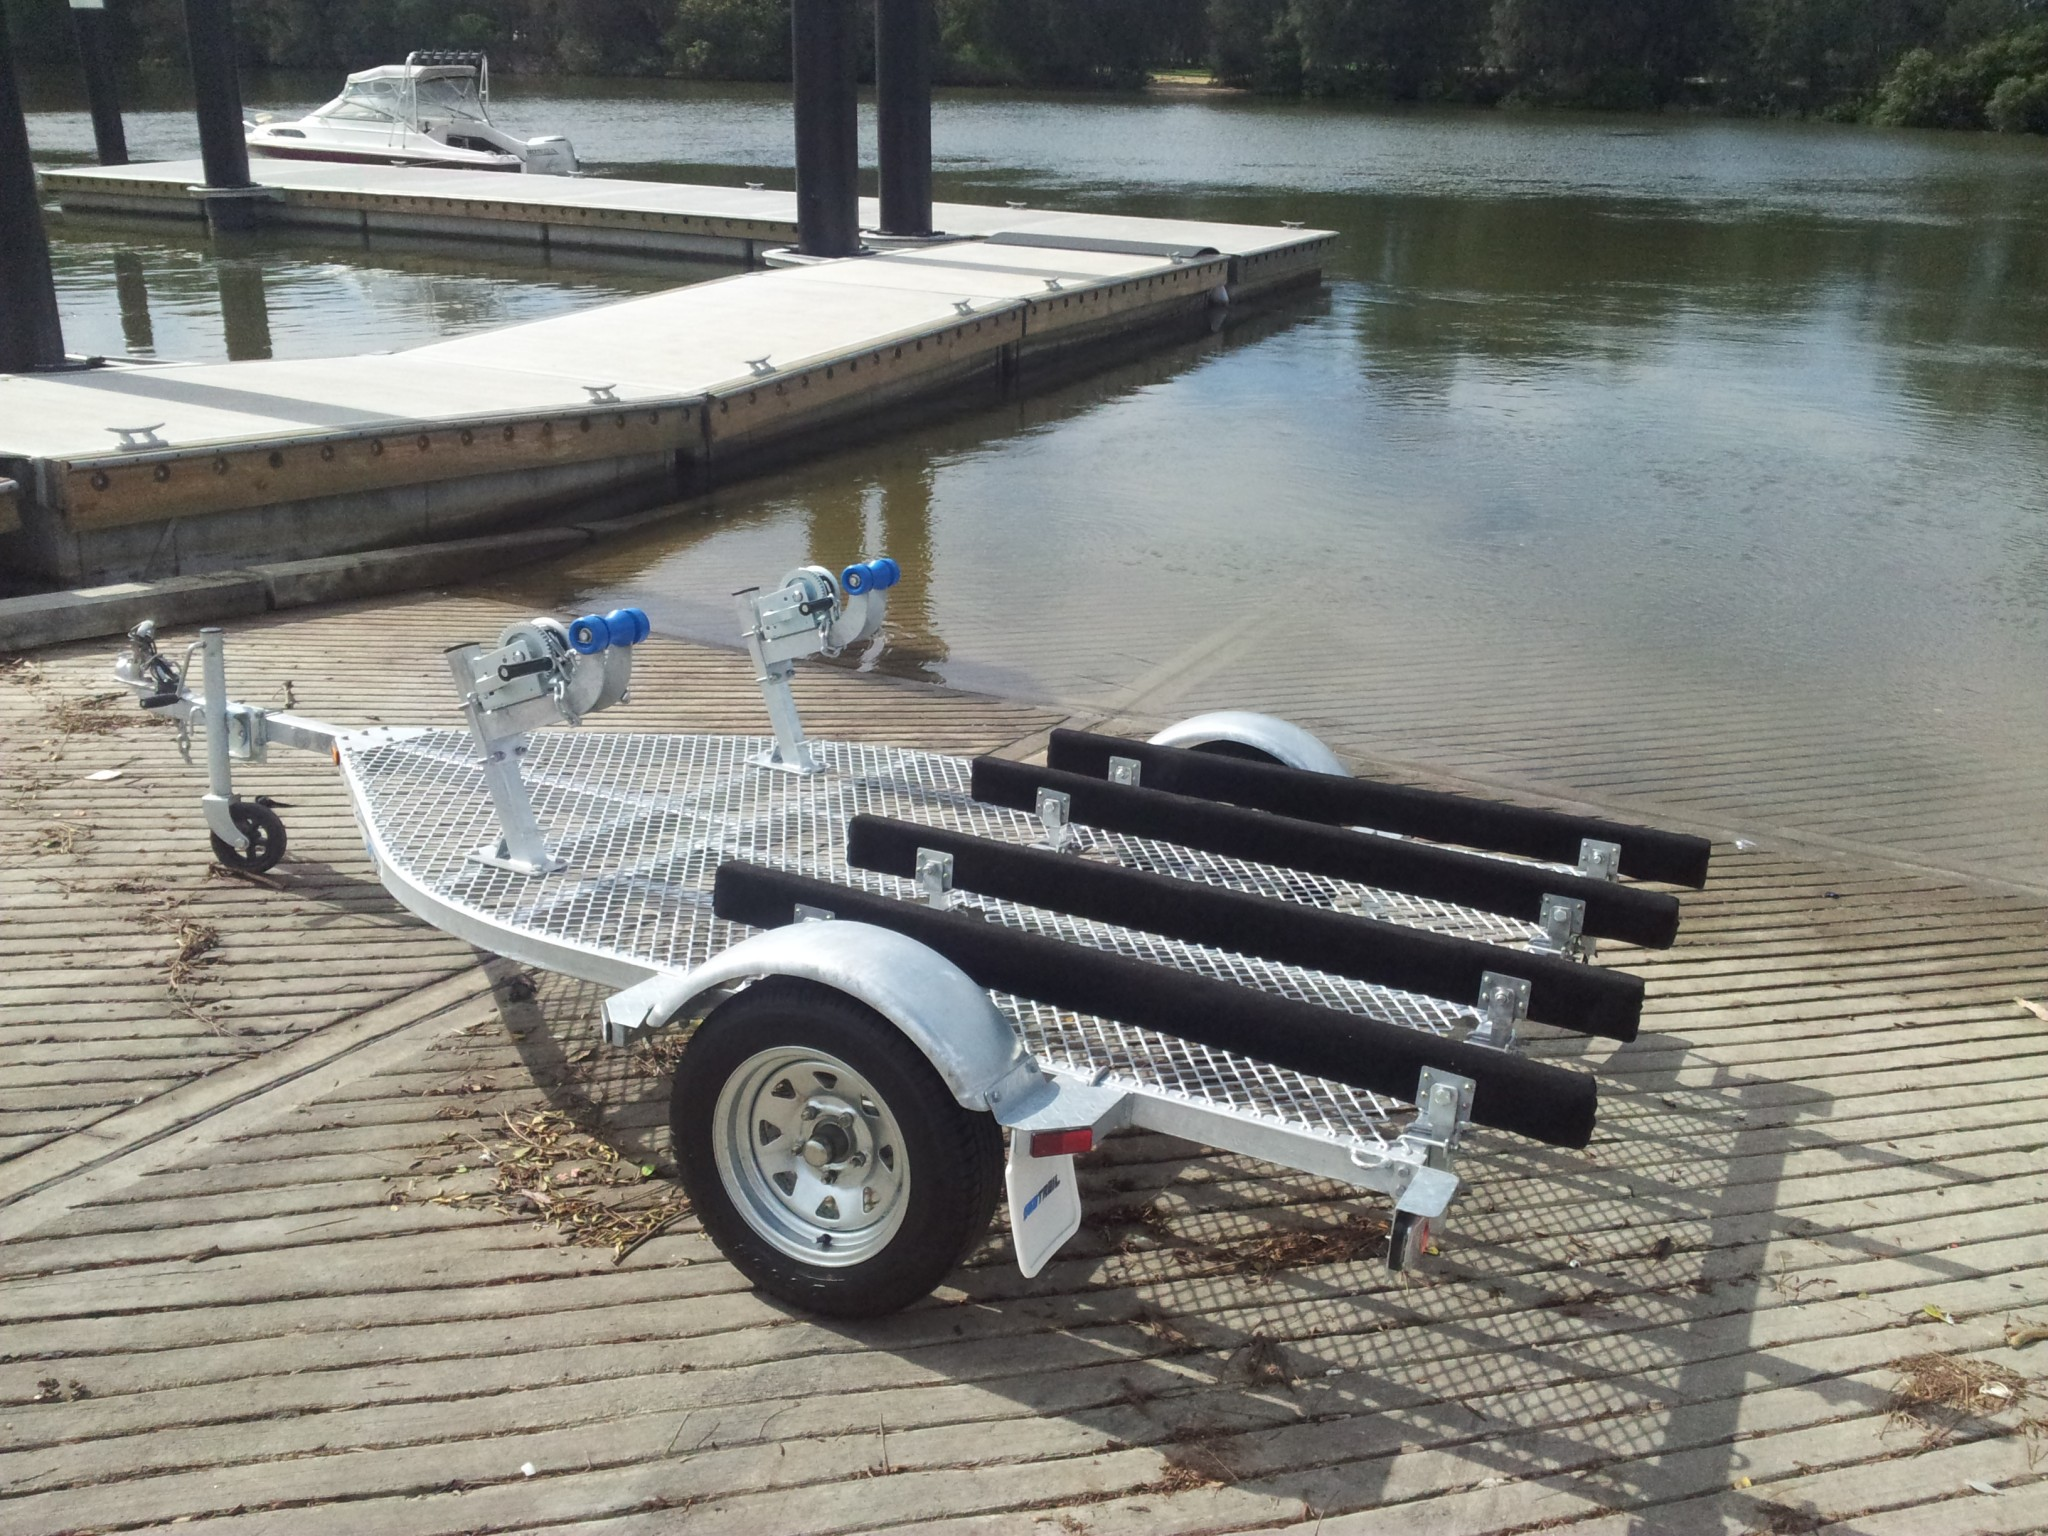 Seatrail Double Standup Pwc Trailer Dblsupwc Suits 2 X